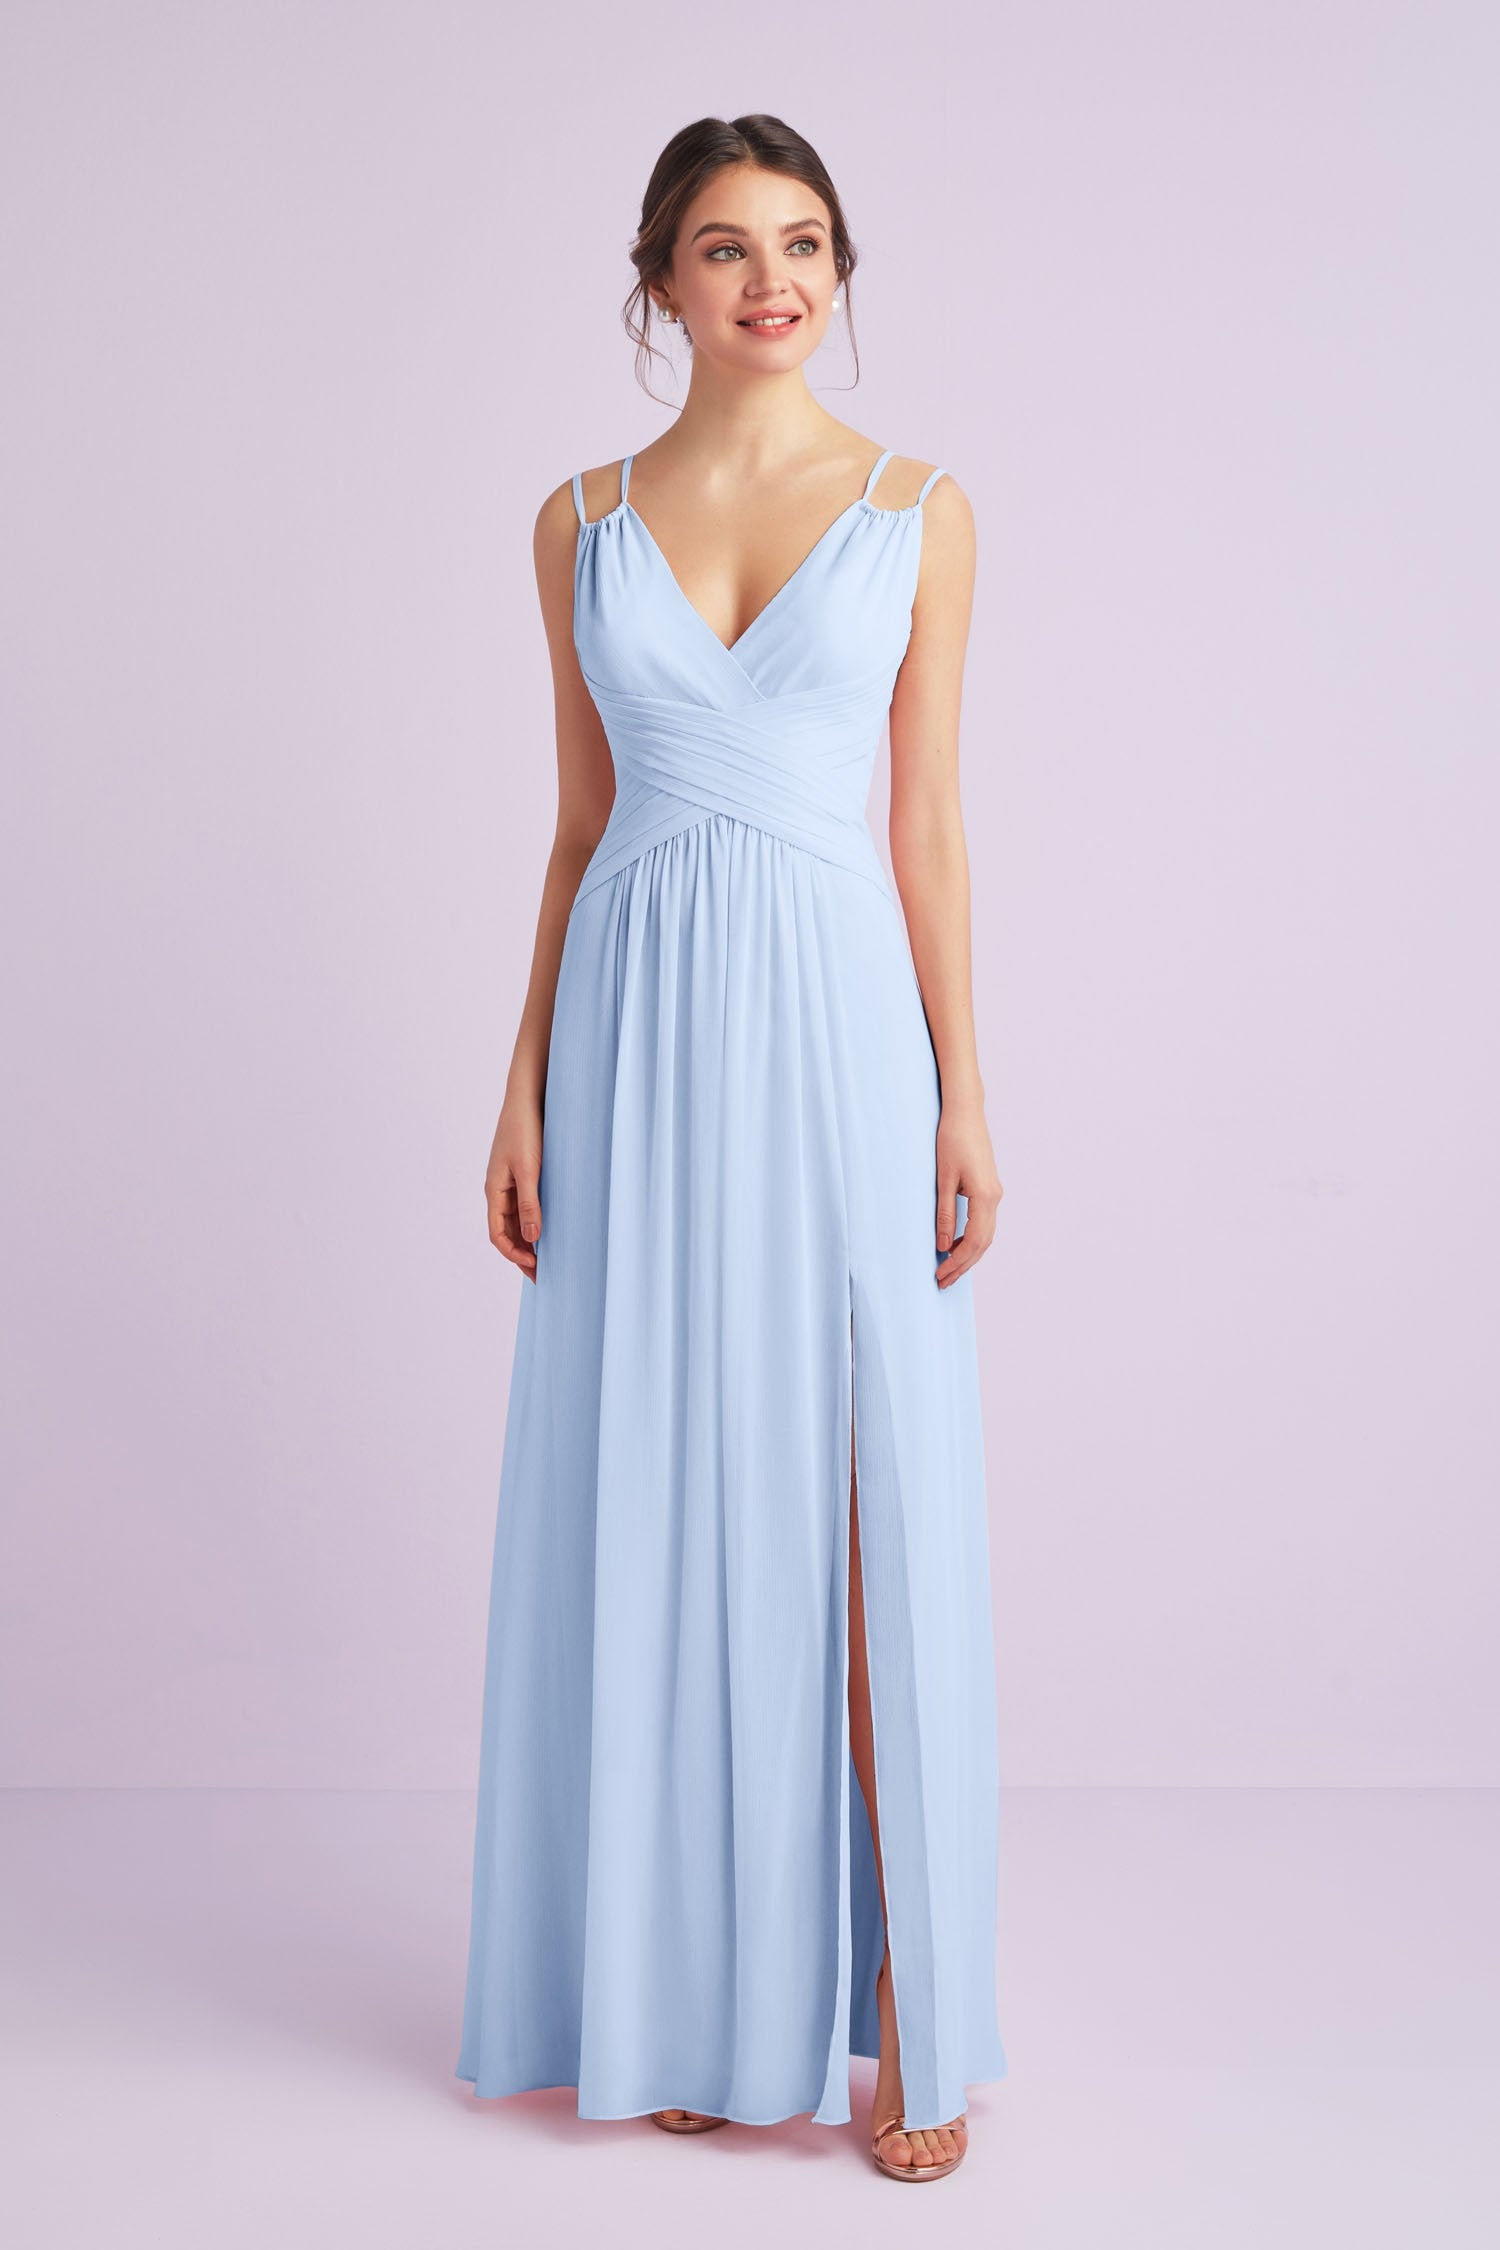 Plunging V-Neck Crinkle Chiffon Bridesmaid Dress